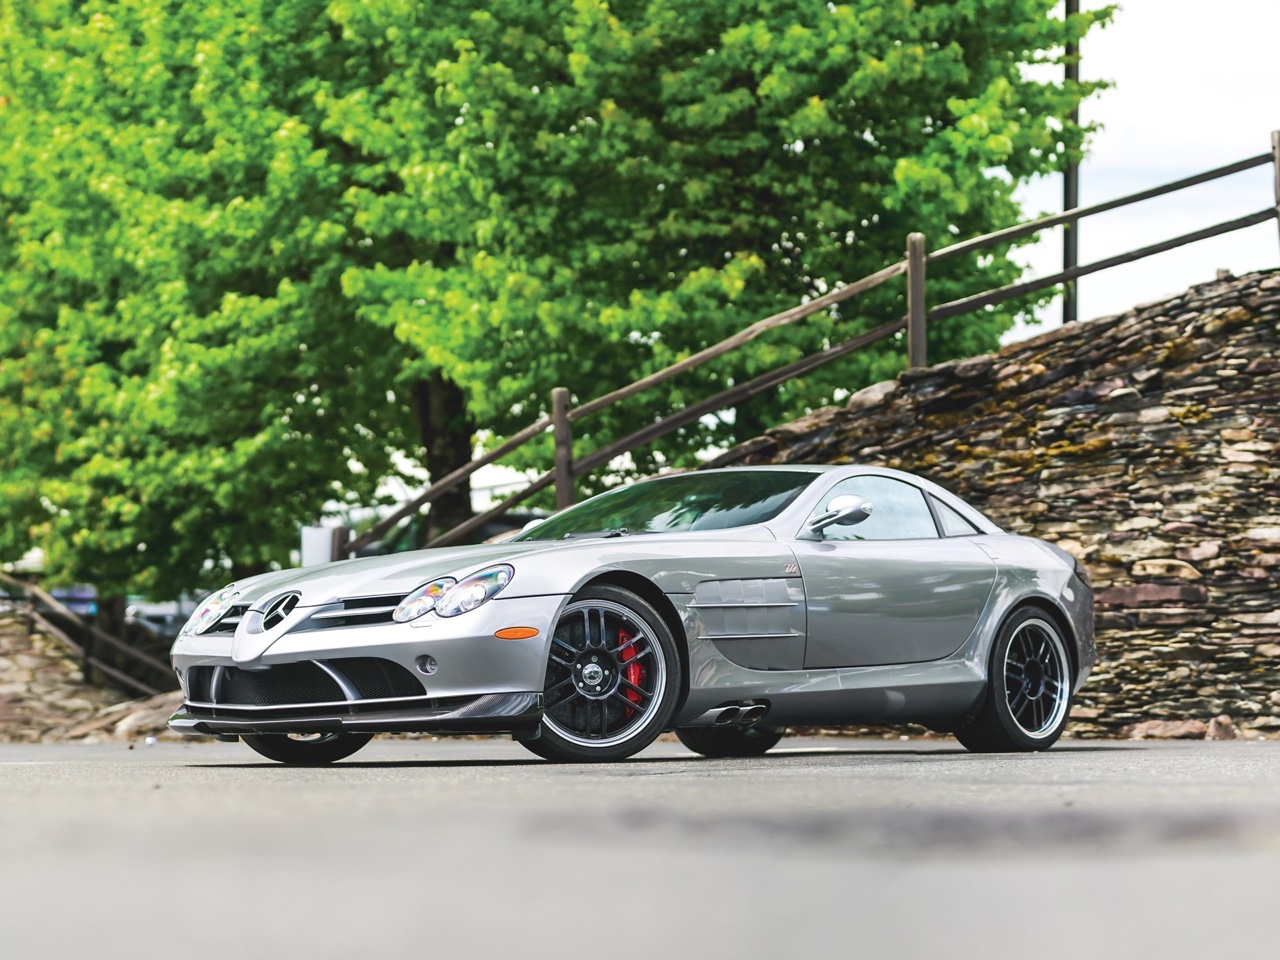 Mercedes SLR McLaren Stirling Moss - Bouquet final ! 14